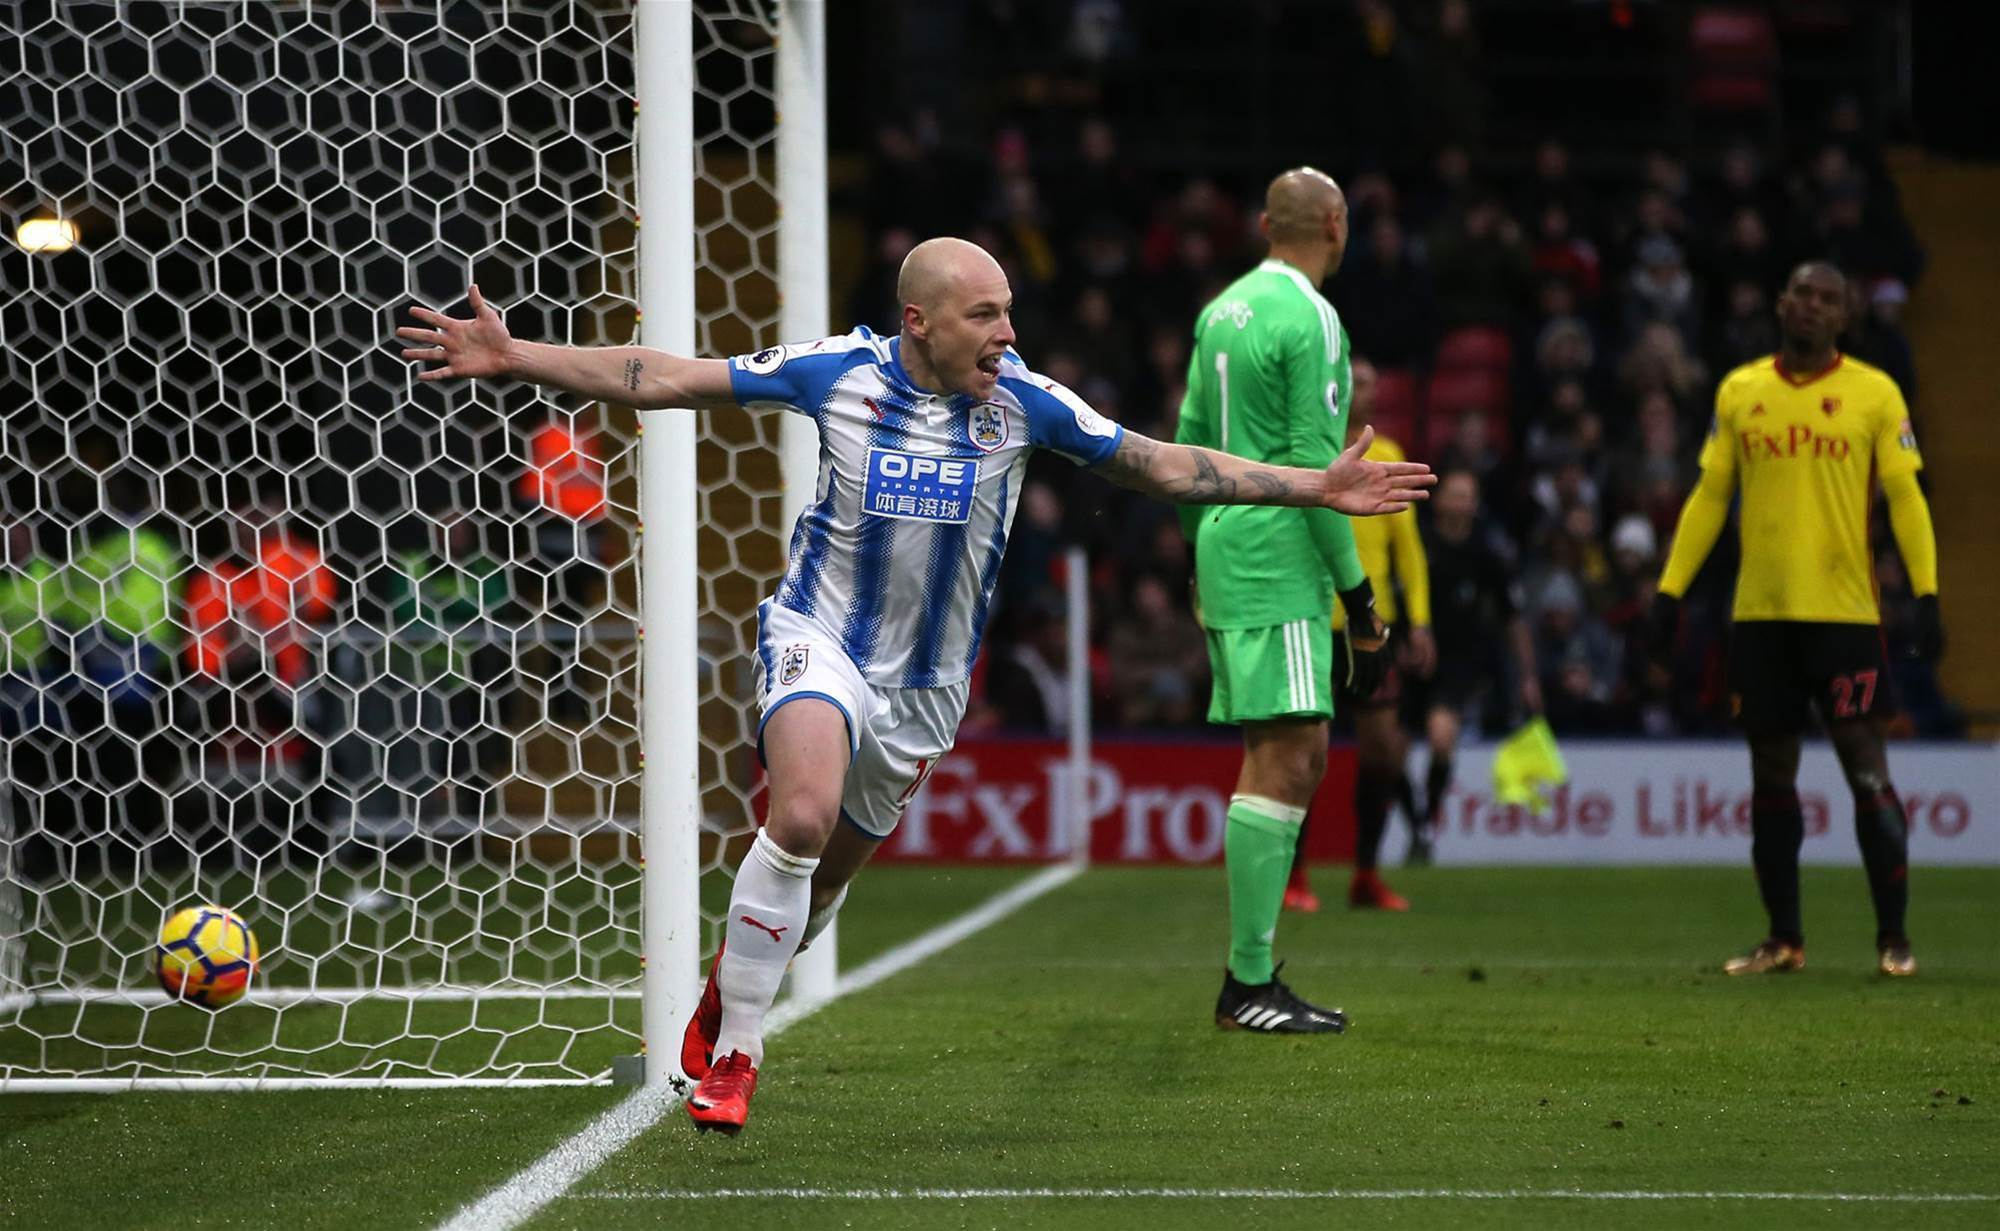 Absolute scenes: Aaron Mooy brace pic special